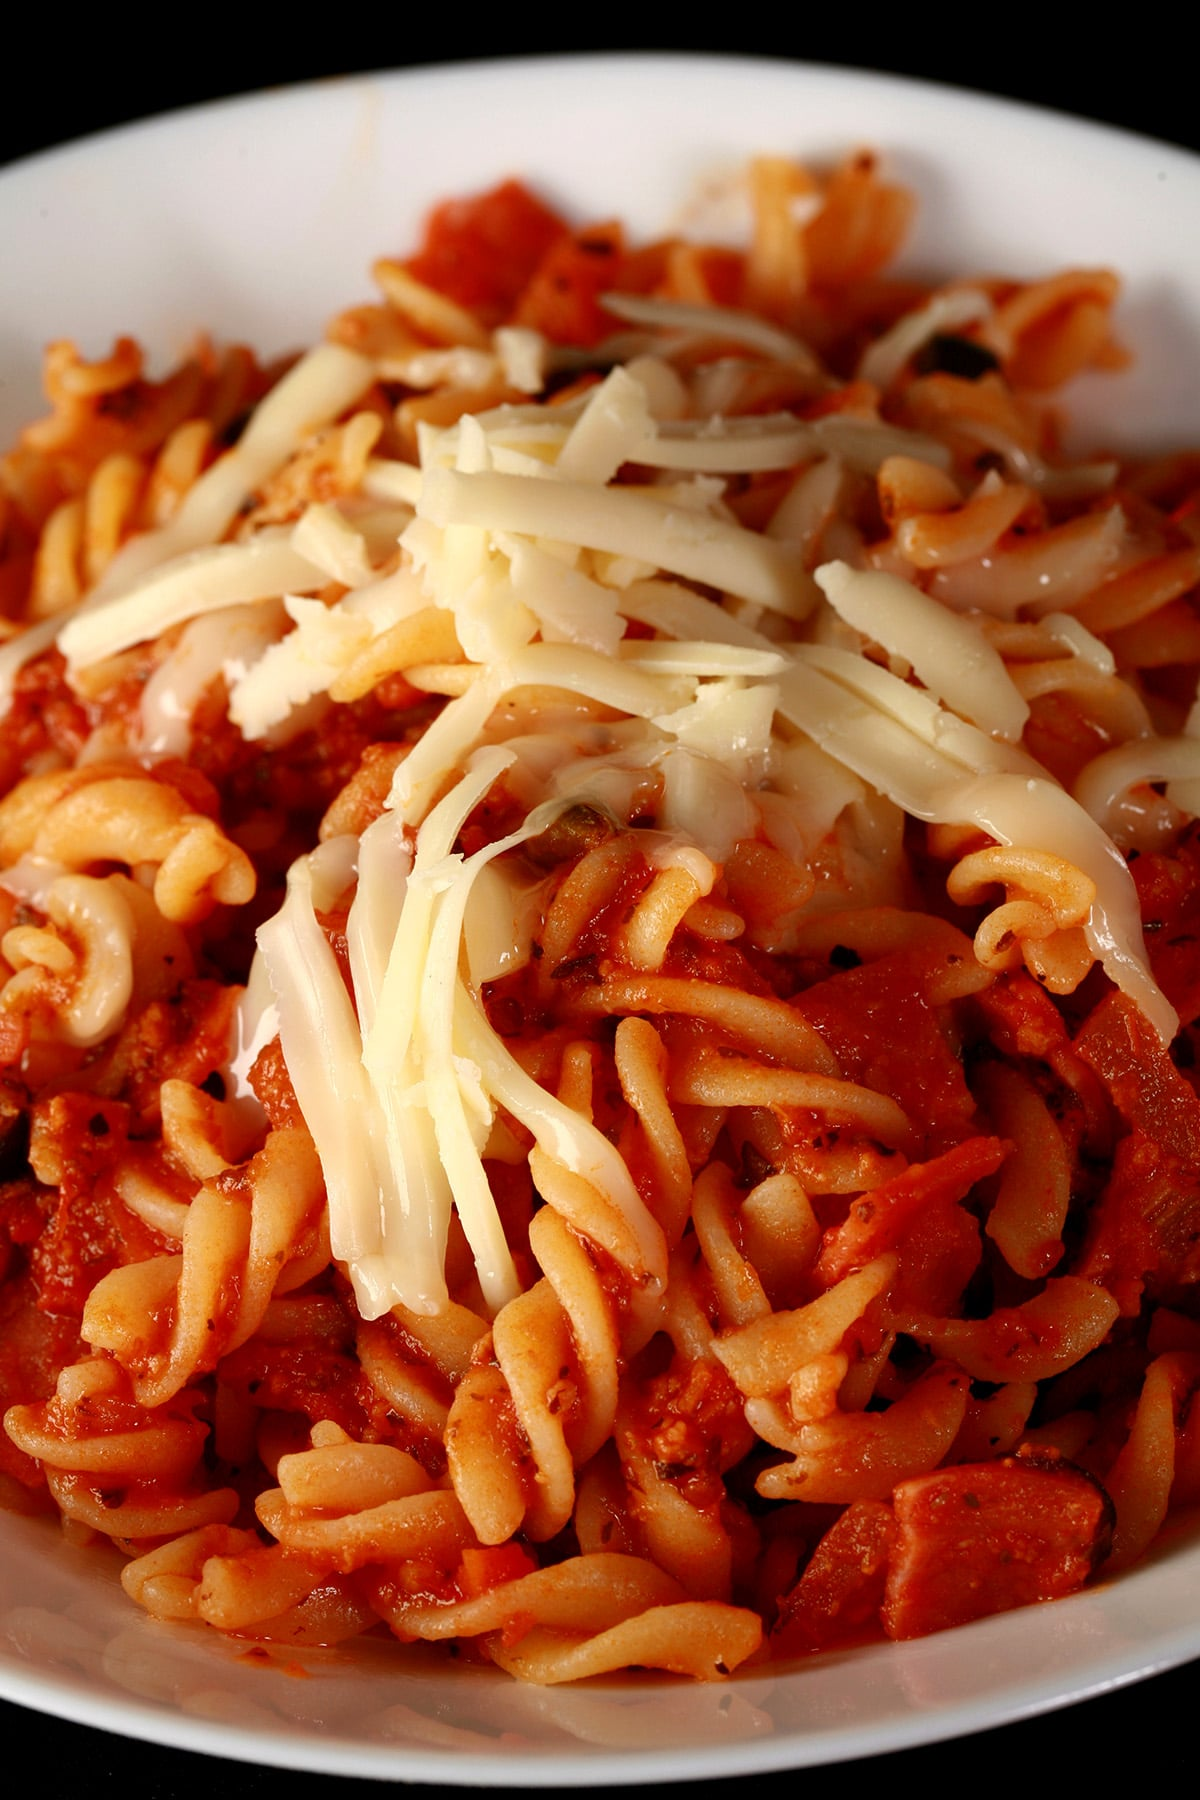 A bowl of pasta in red sauce, with bits of pepperoni and sliced black olives visible.